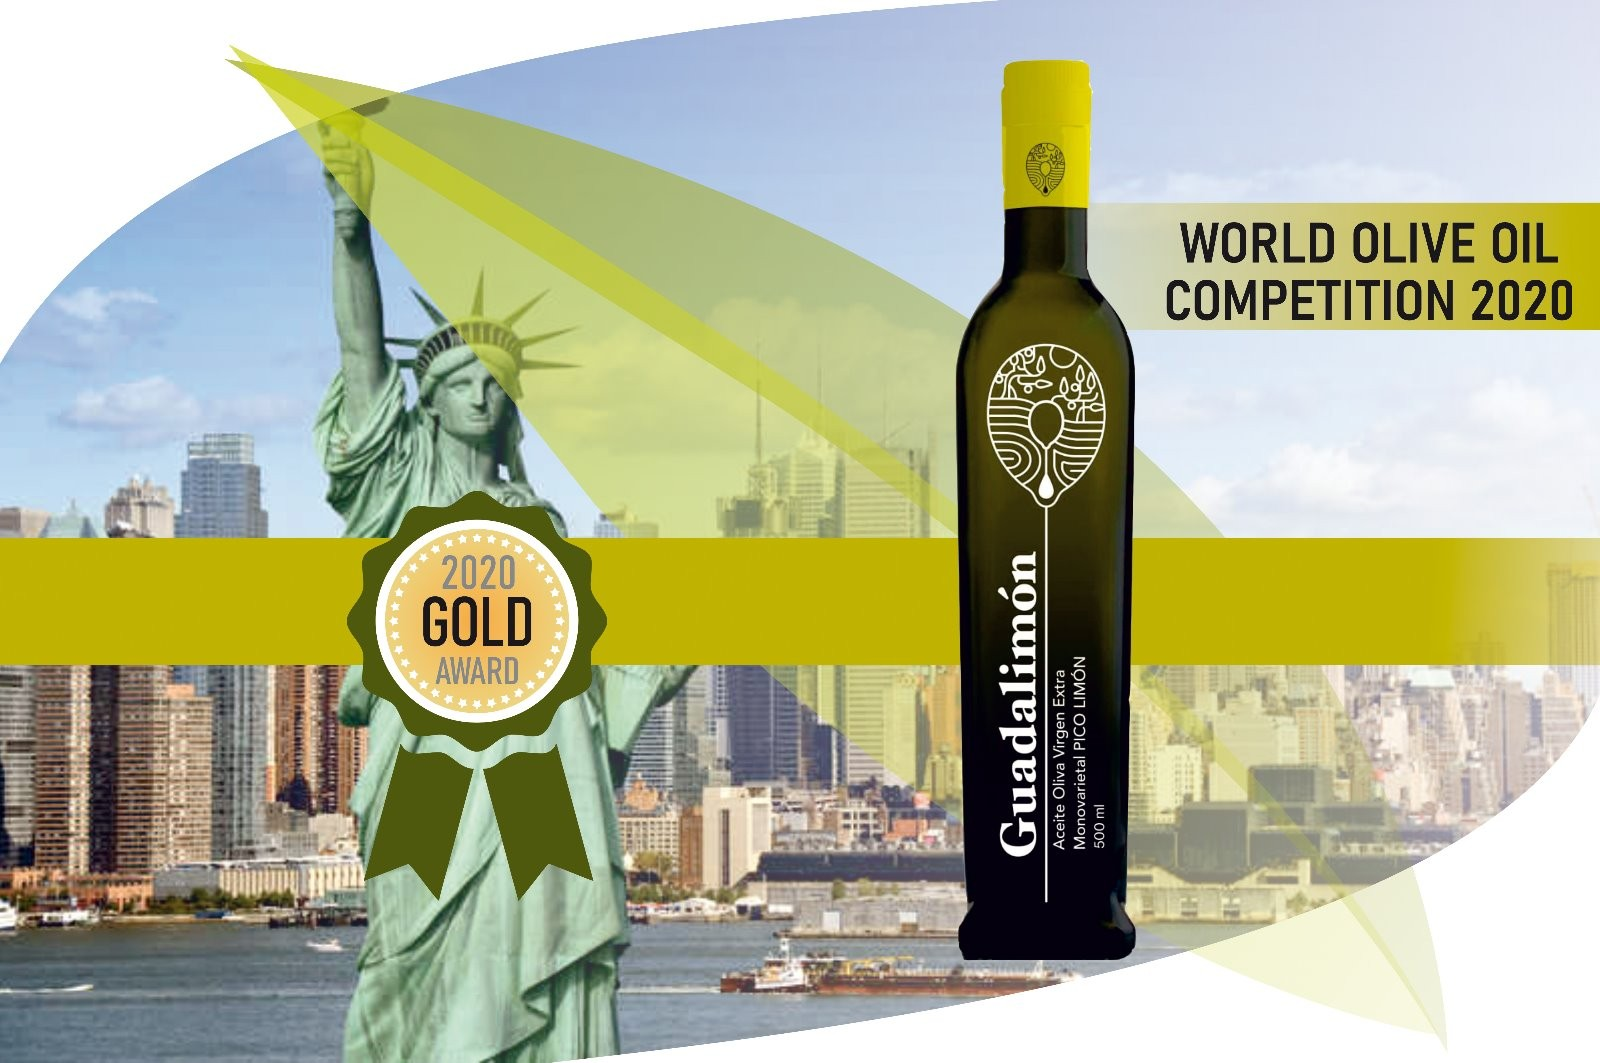 WORLD OLIVE OIL COMPETITION 2020